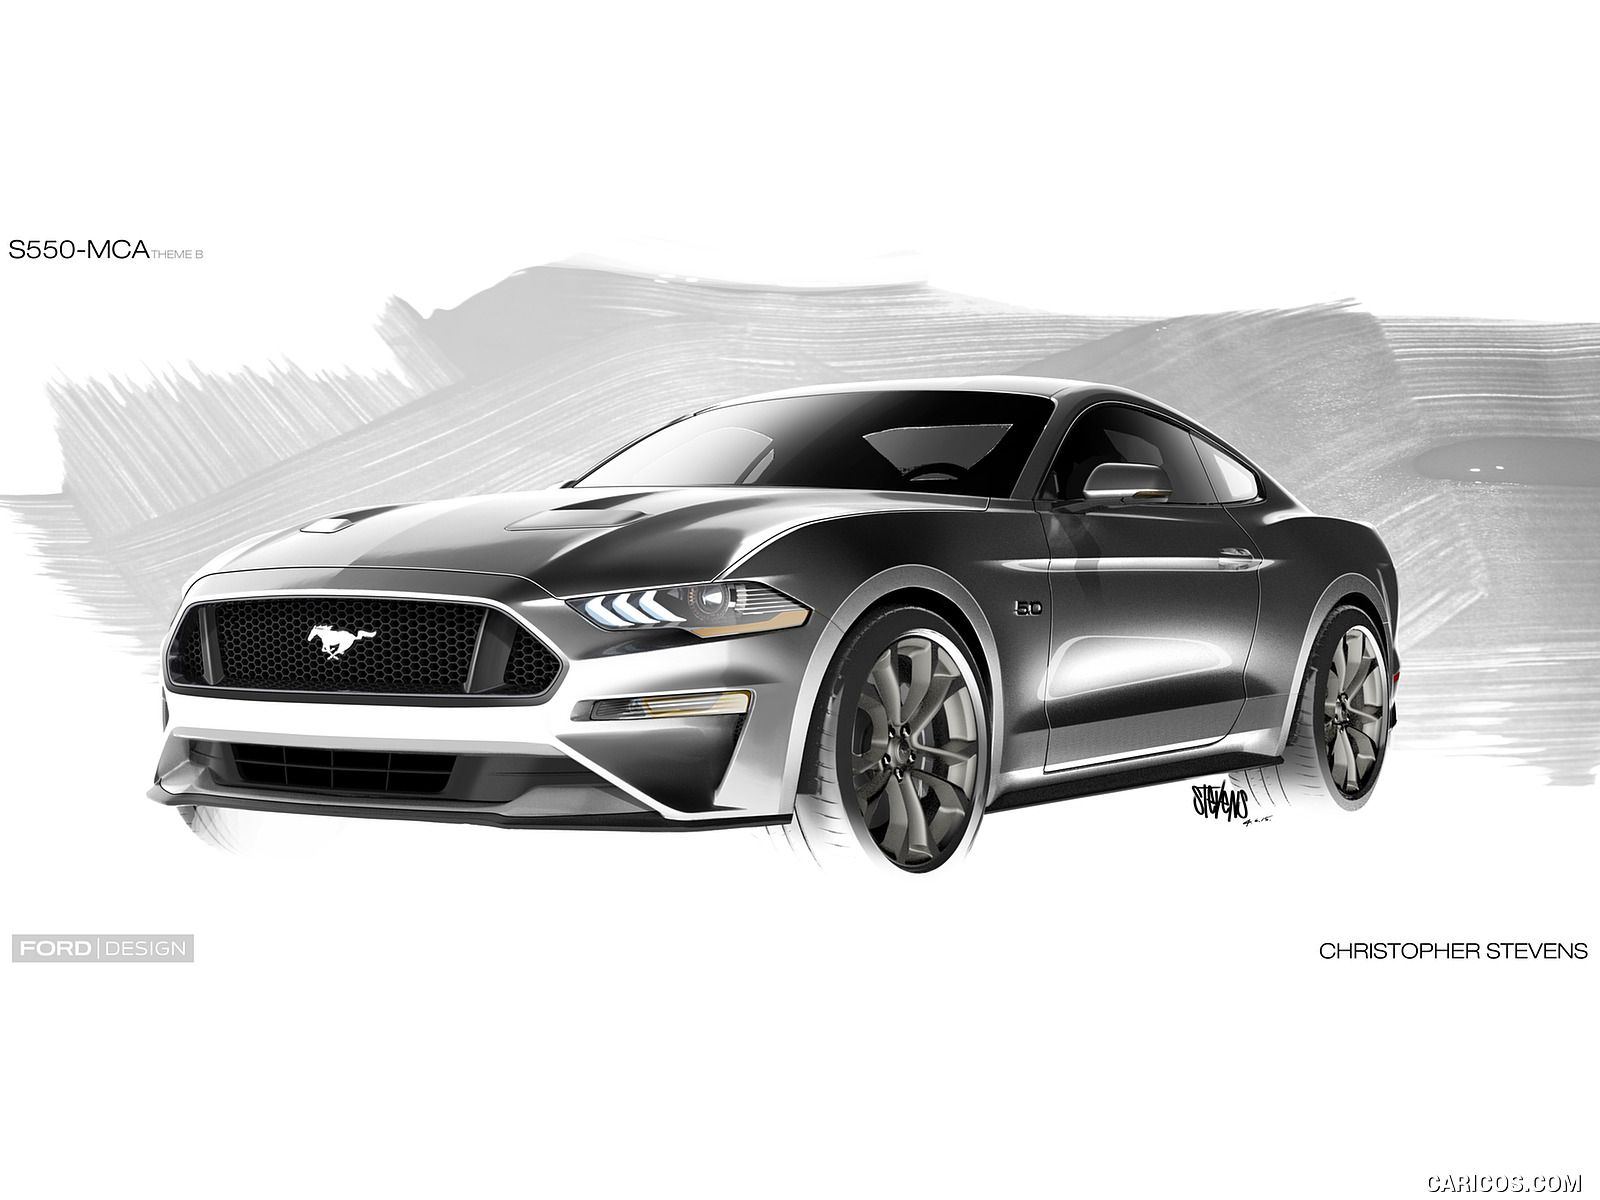 2018 Ford Mustang Design Sketch 22 Of 25 Cars Sketch